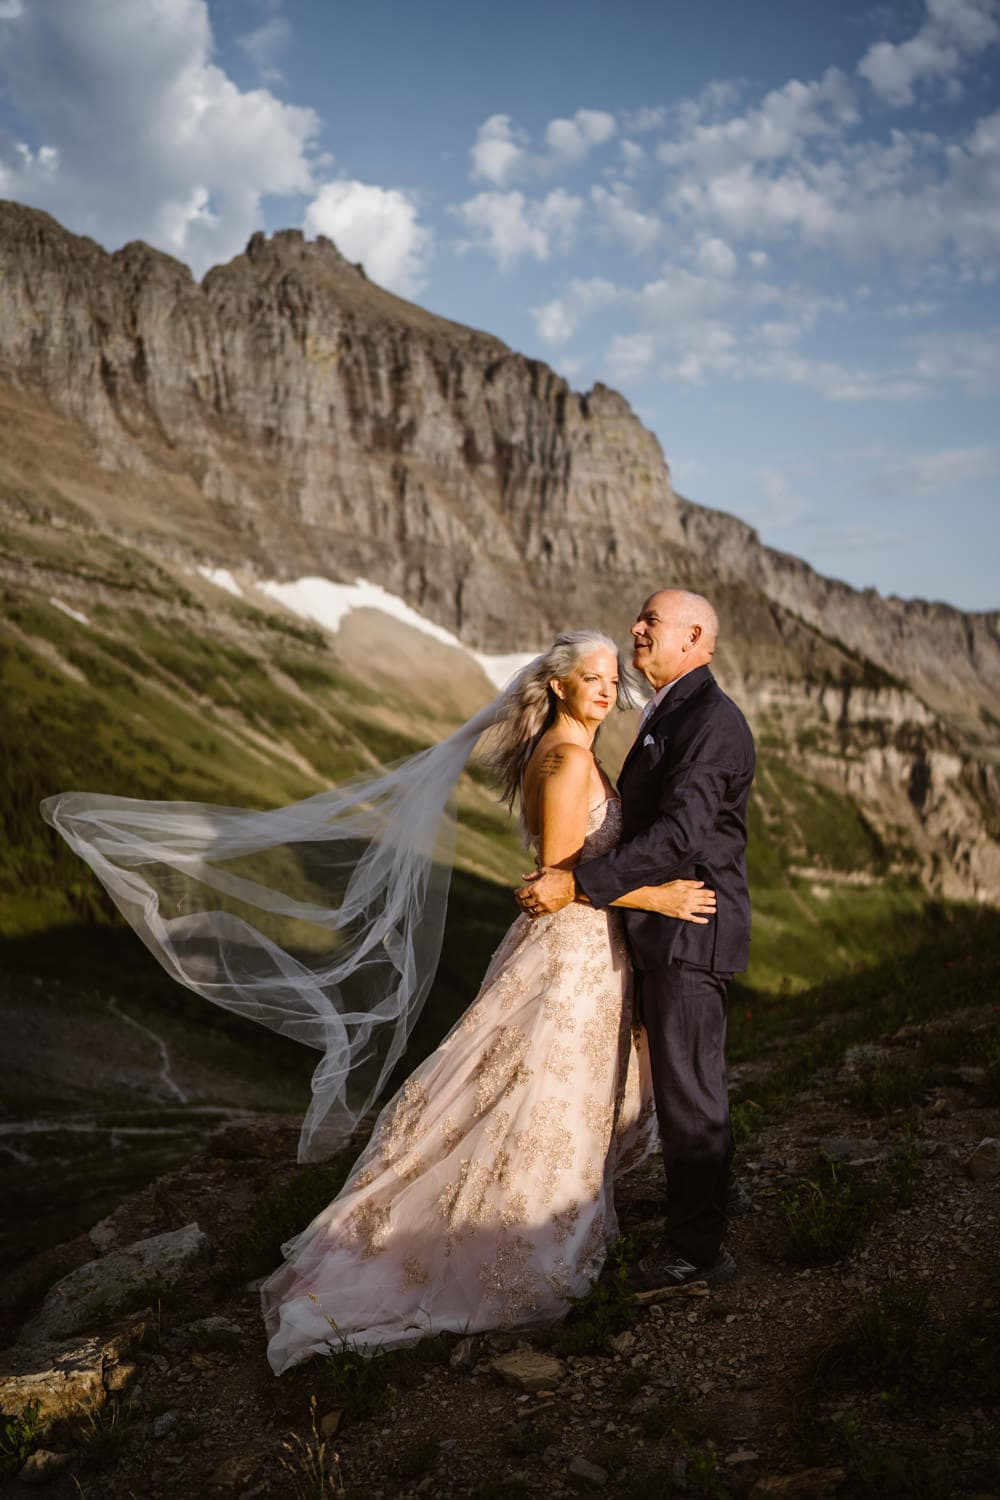 Top 10 Reasons Why You Should Elope Bride and Groom